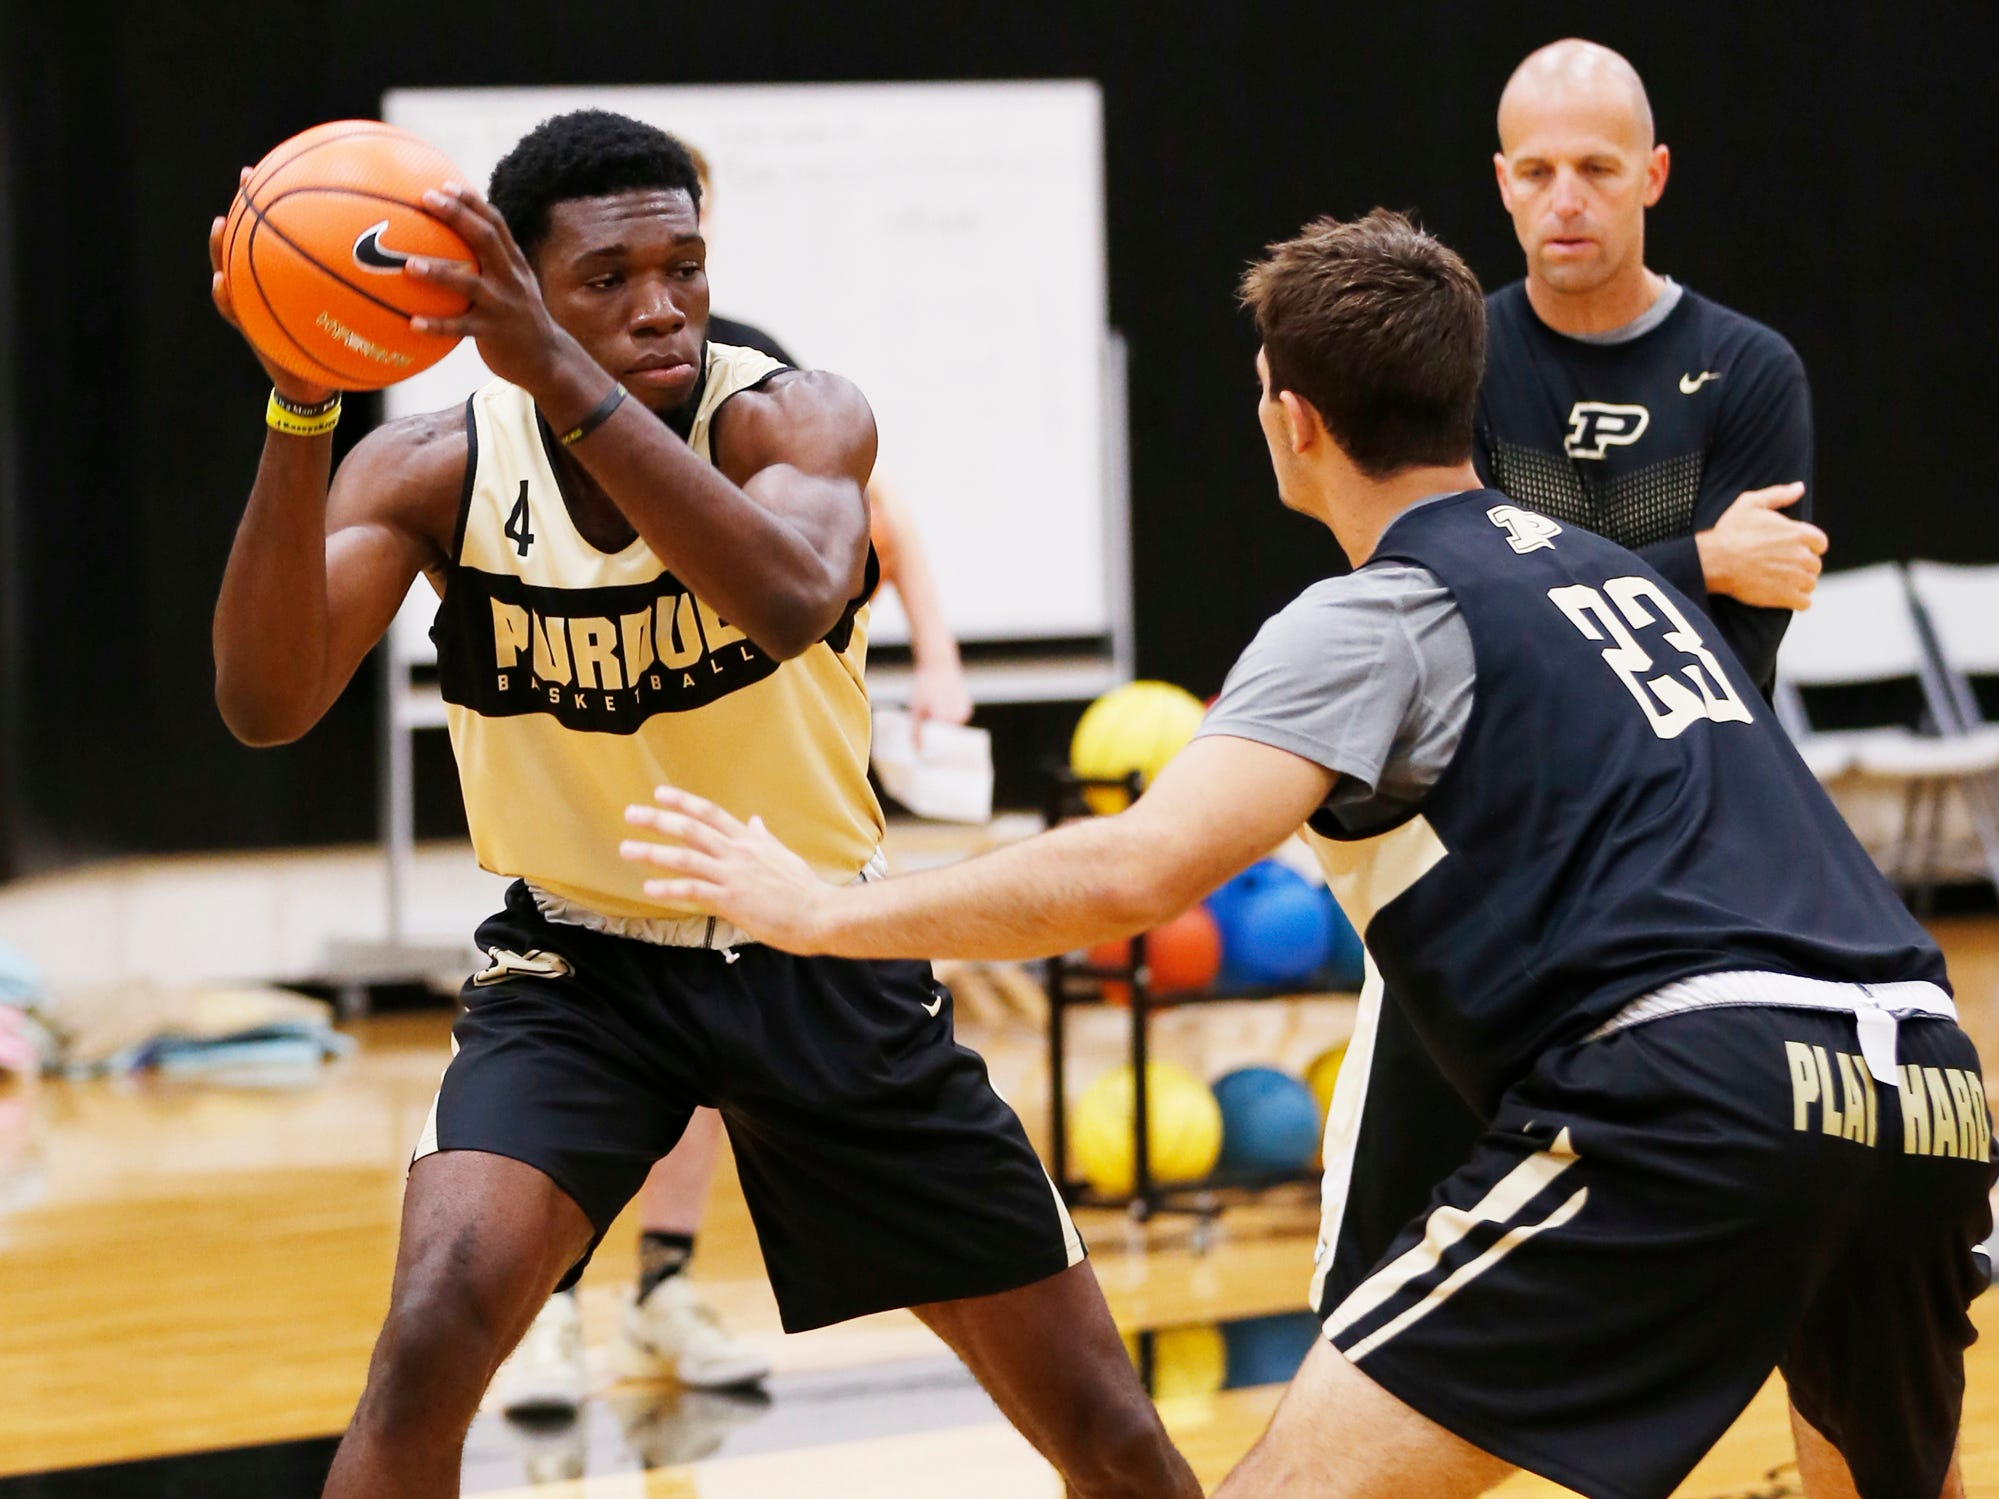 Emmanuel Dowuona looks to pass while guarded by Kyle King during the first official practice of the season for Purdue men's basketball Tuesday, September 25, 2018, at Cardinal Court in Mackey Arena.